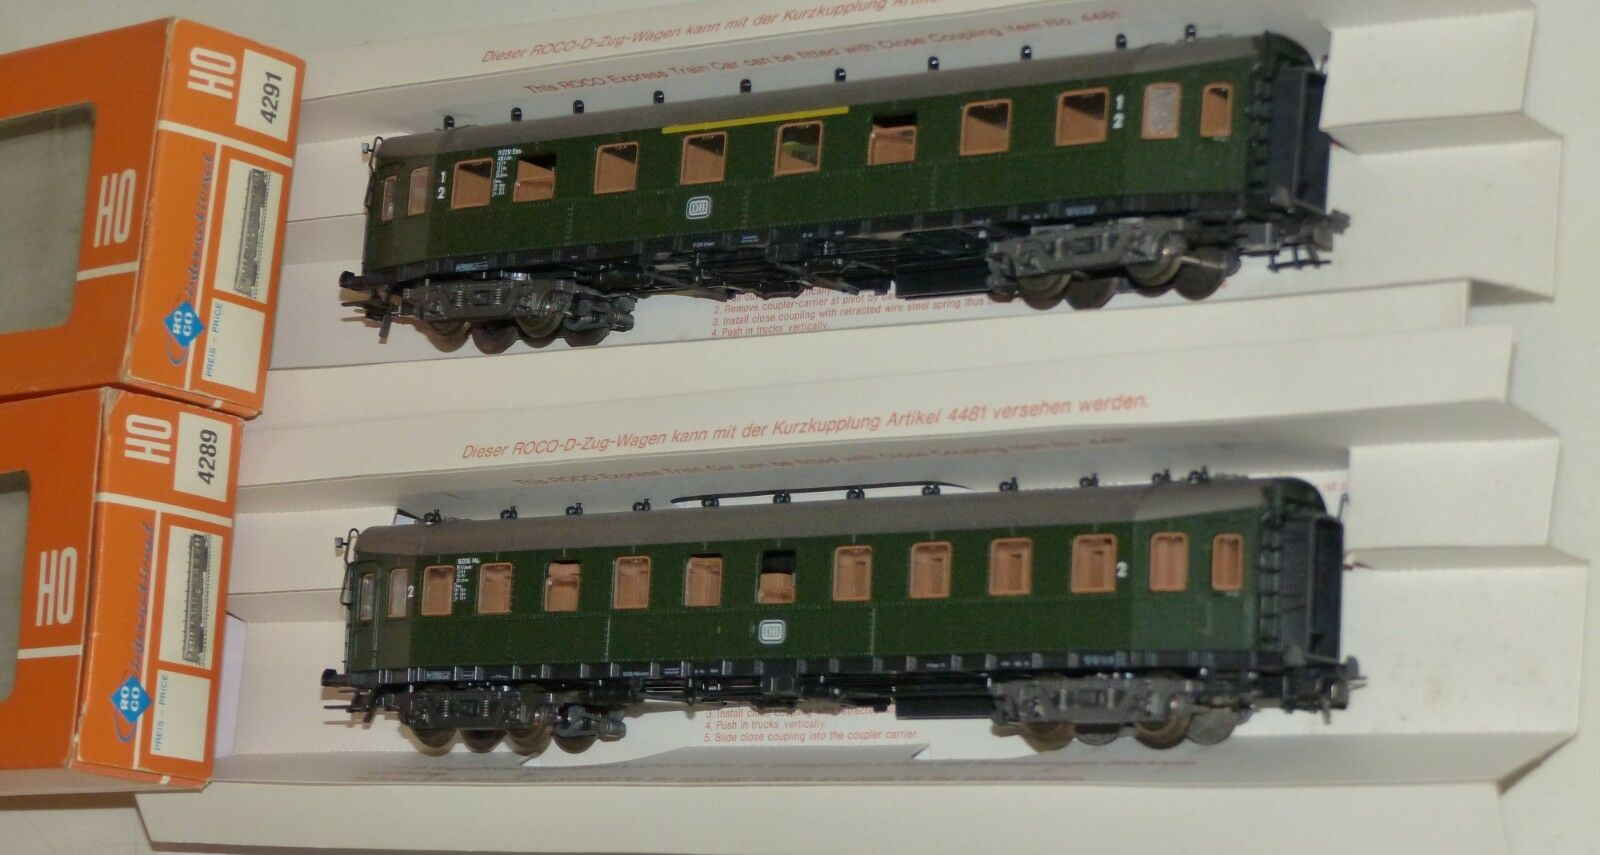 2 Roco Pike Car Passenger Cars  4291 and 4289 OVP h0 1 87